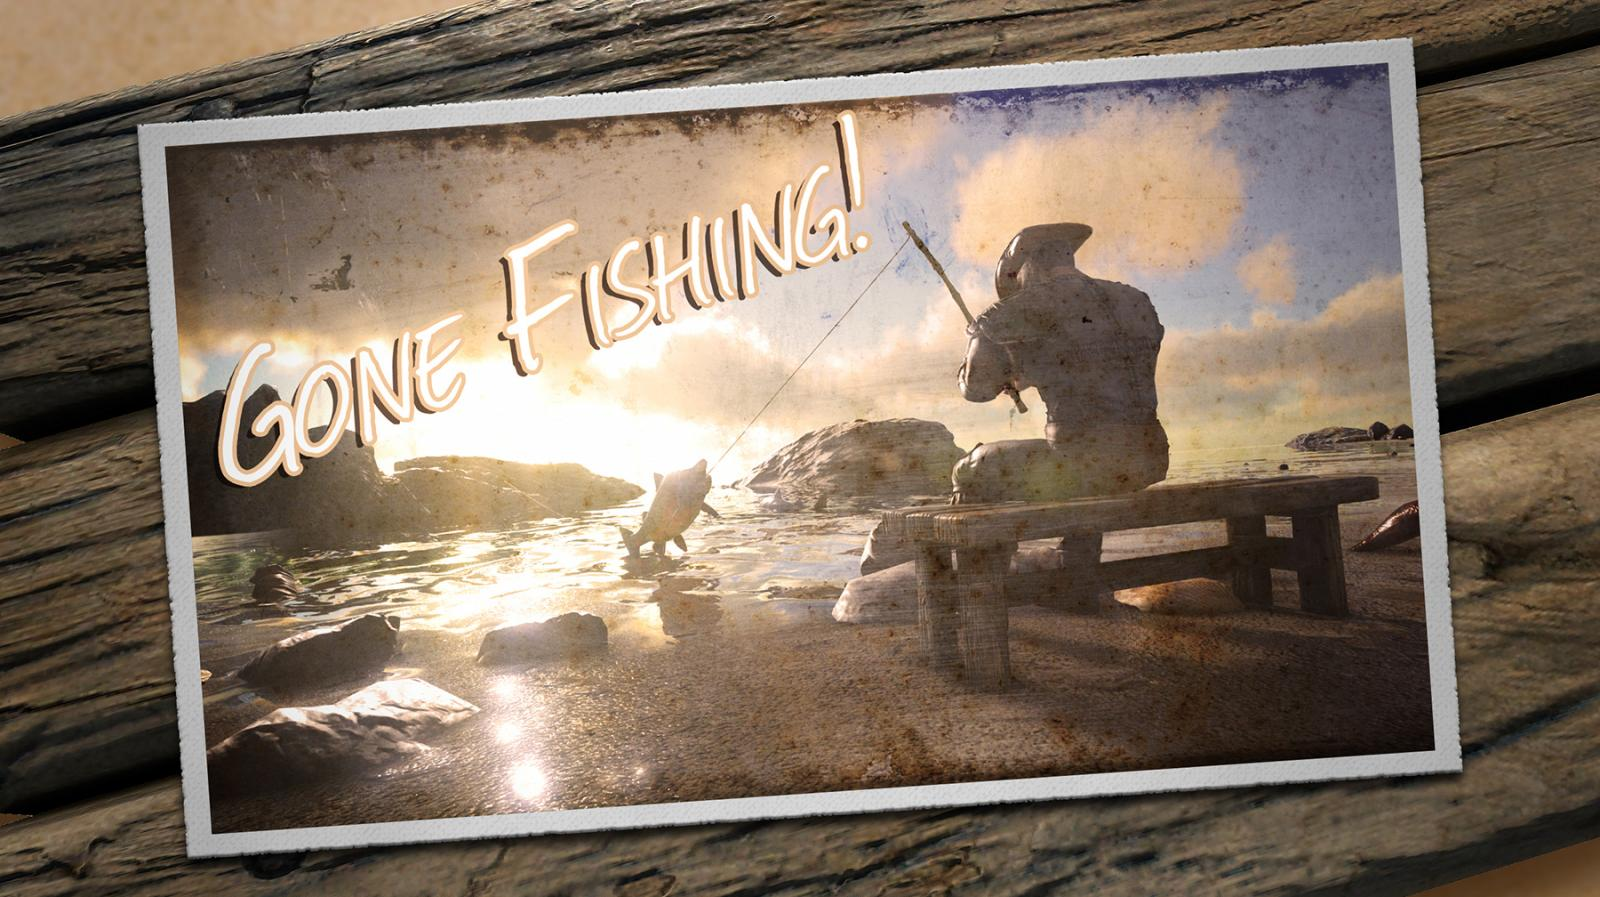 Let´s Go Fishing!